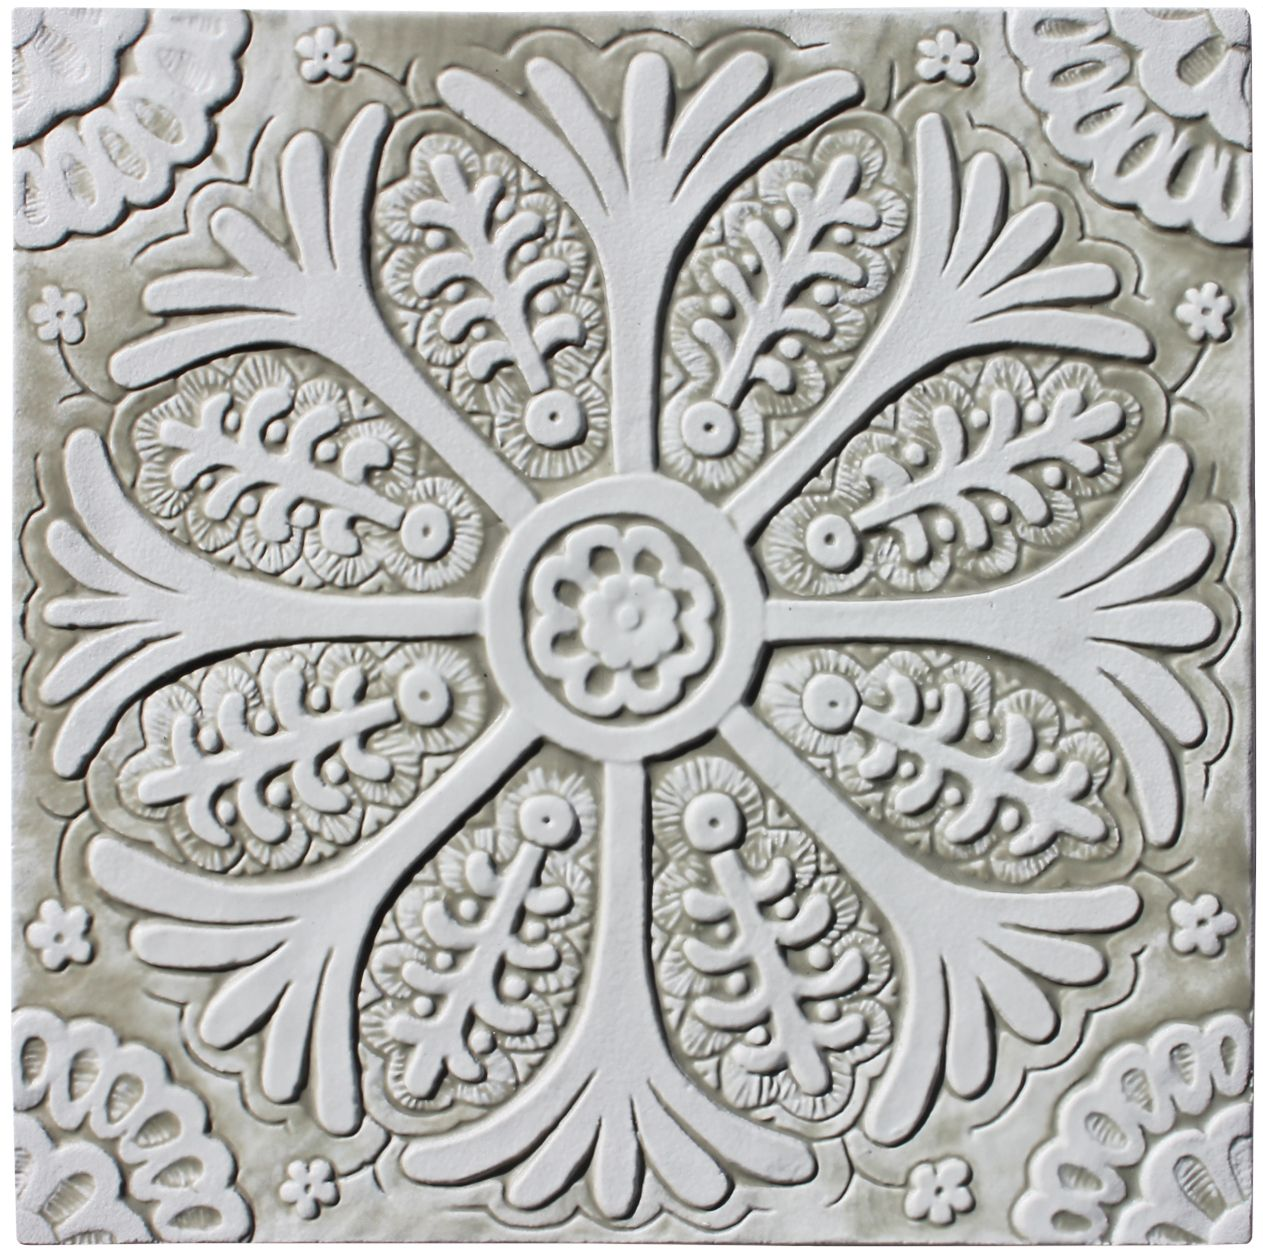 Tiles For Wall Decor Impressive Suzani Ceramic Wall Art #3 White 30Cm  Ceramic Wall Art Walls Inspiration Design